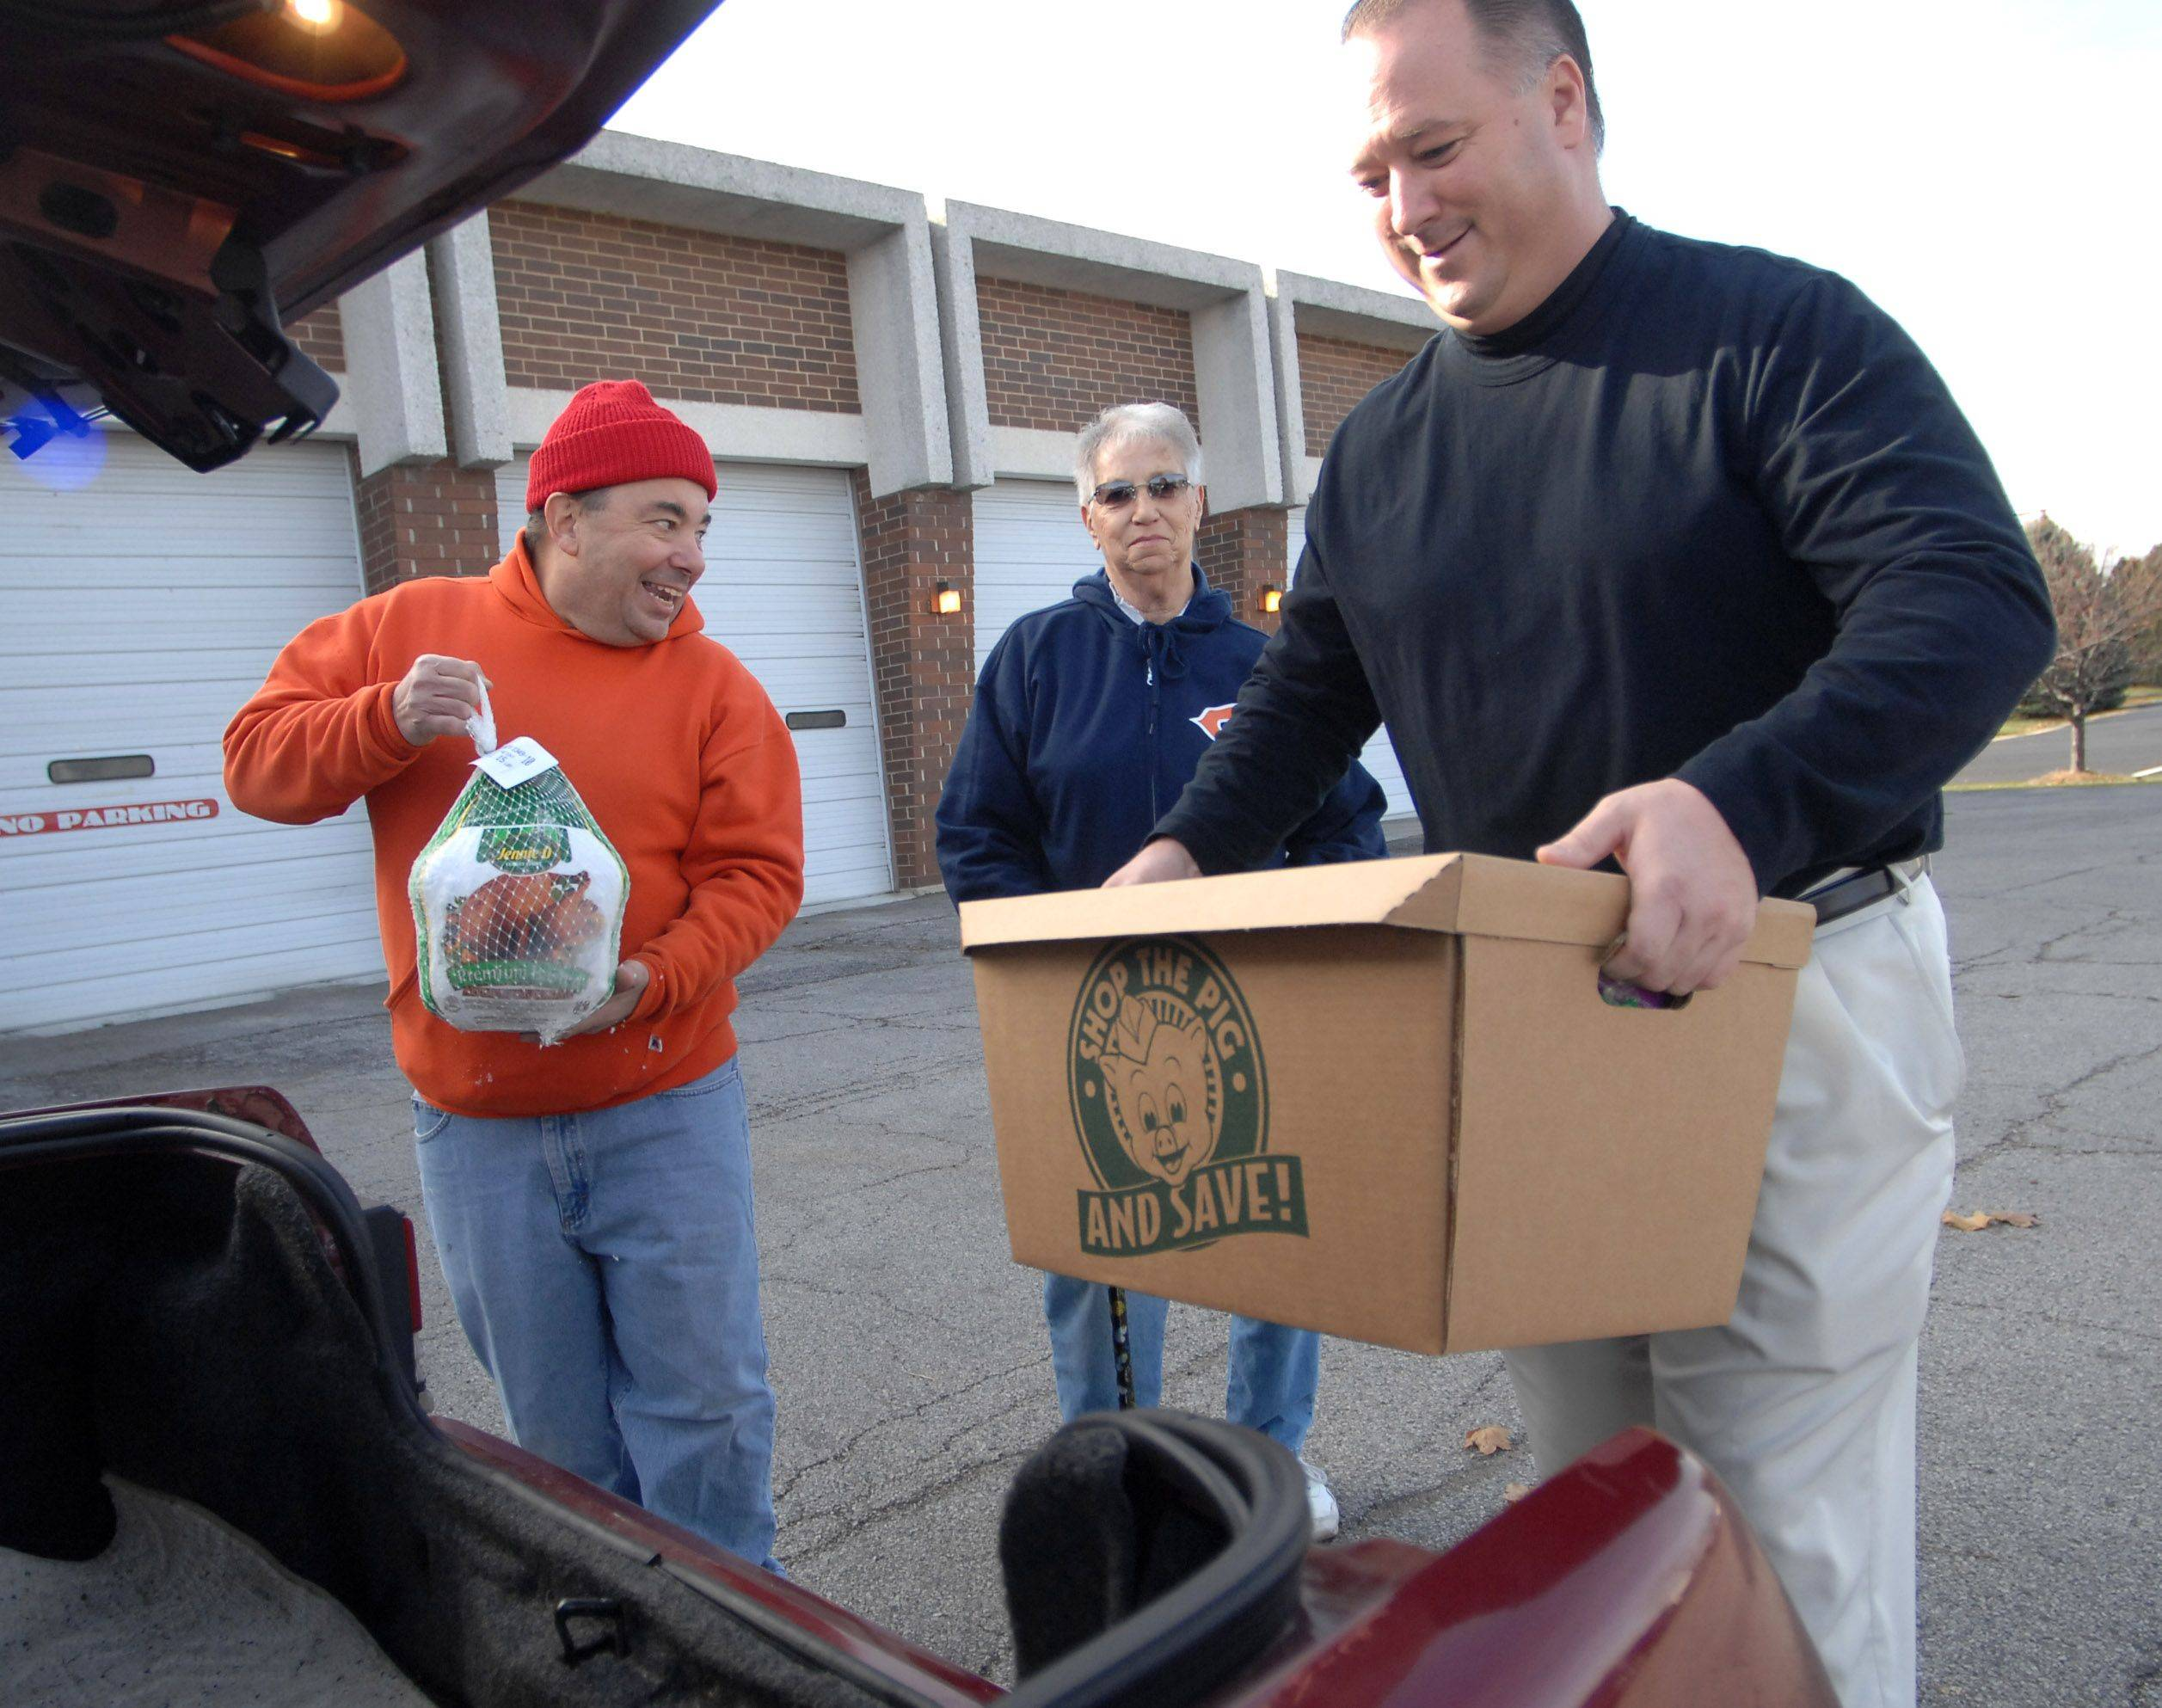 Antioch resident Dolores Matthews, center, picks up a Thanksgiving meal from the Antioch Lions Club Saturday morning. Volunteer Michael Markasovic, left, and Lions Club member Tom Sweetwood load the food into Matthews' car who was picking up the items for a relative.